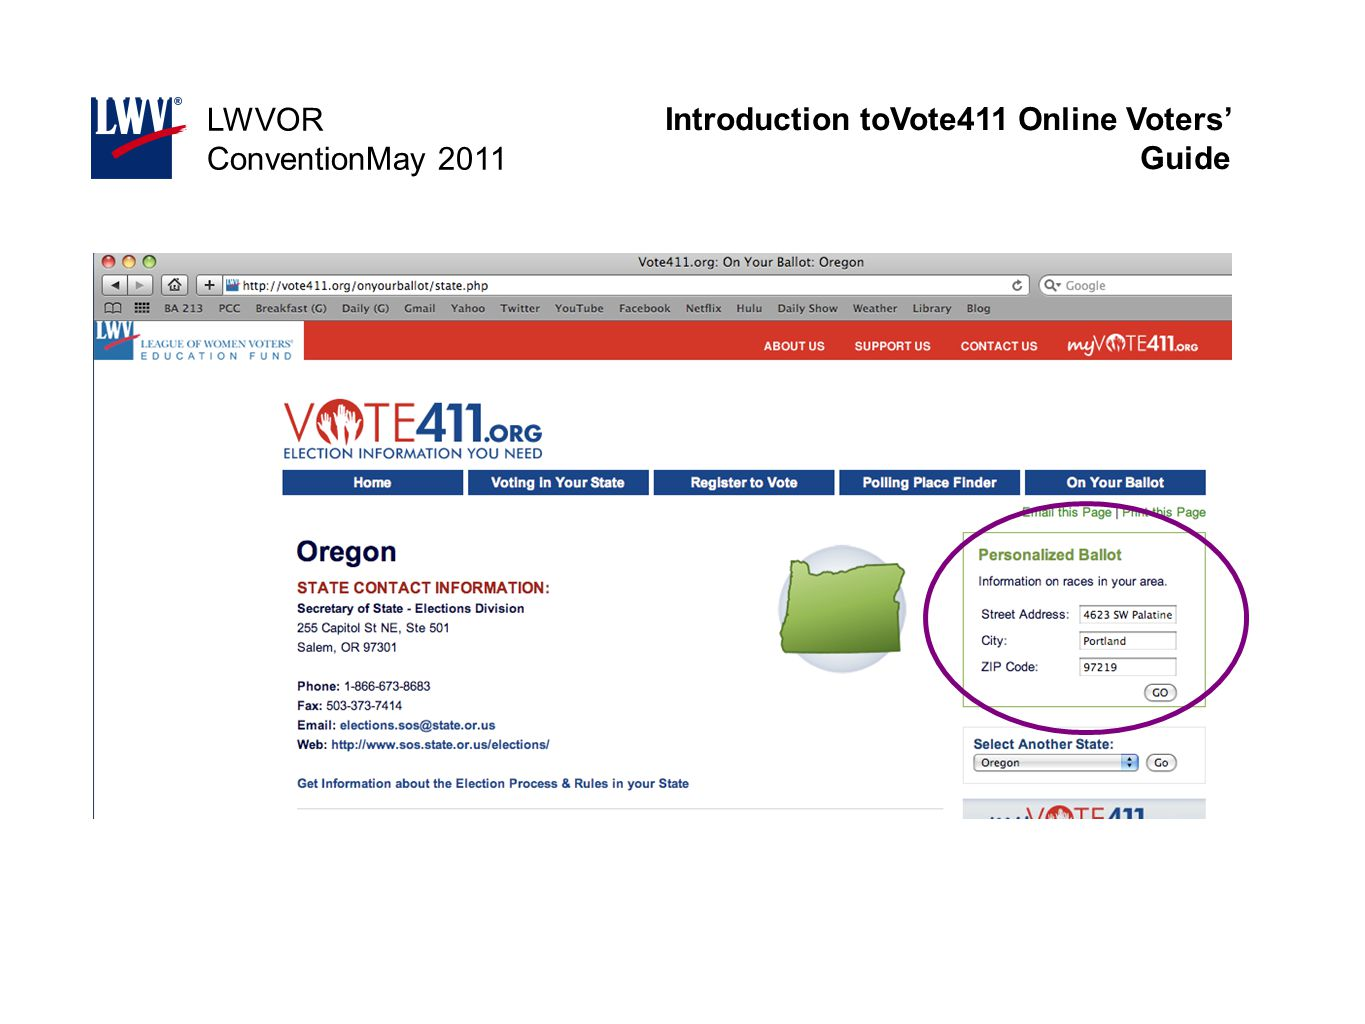 Introduction toVote411 Online Voters' Guide LWVOR ConventionMay 2011